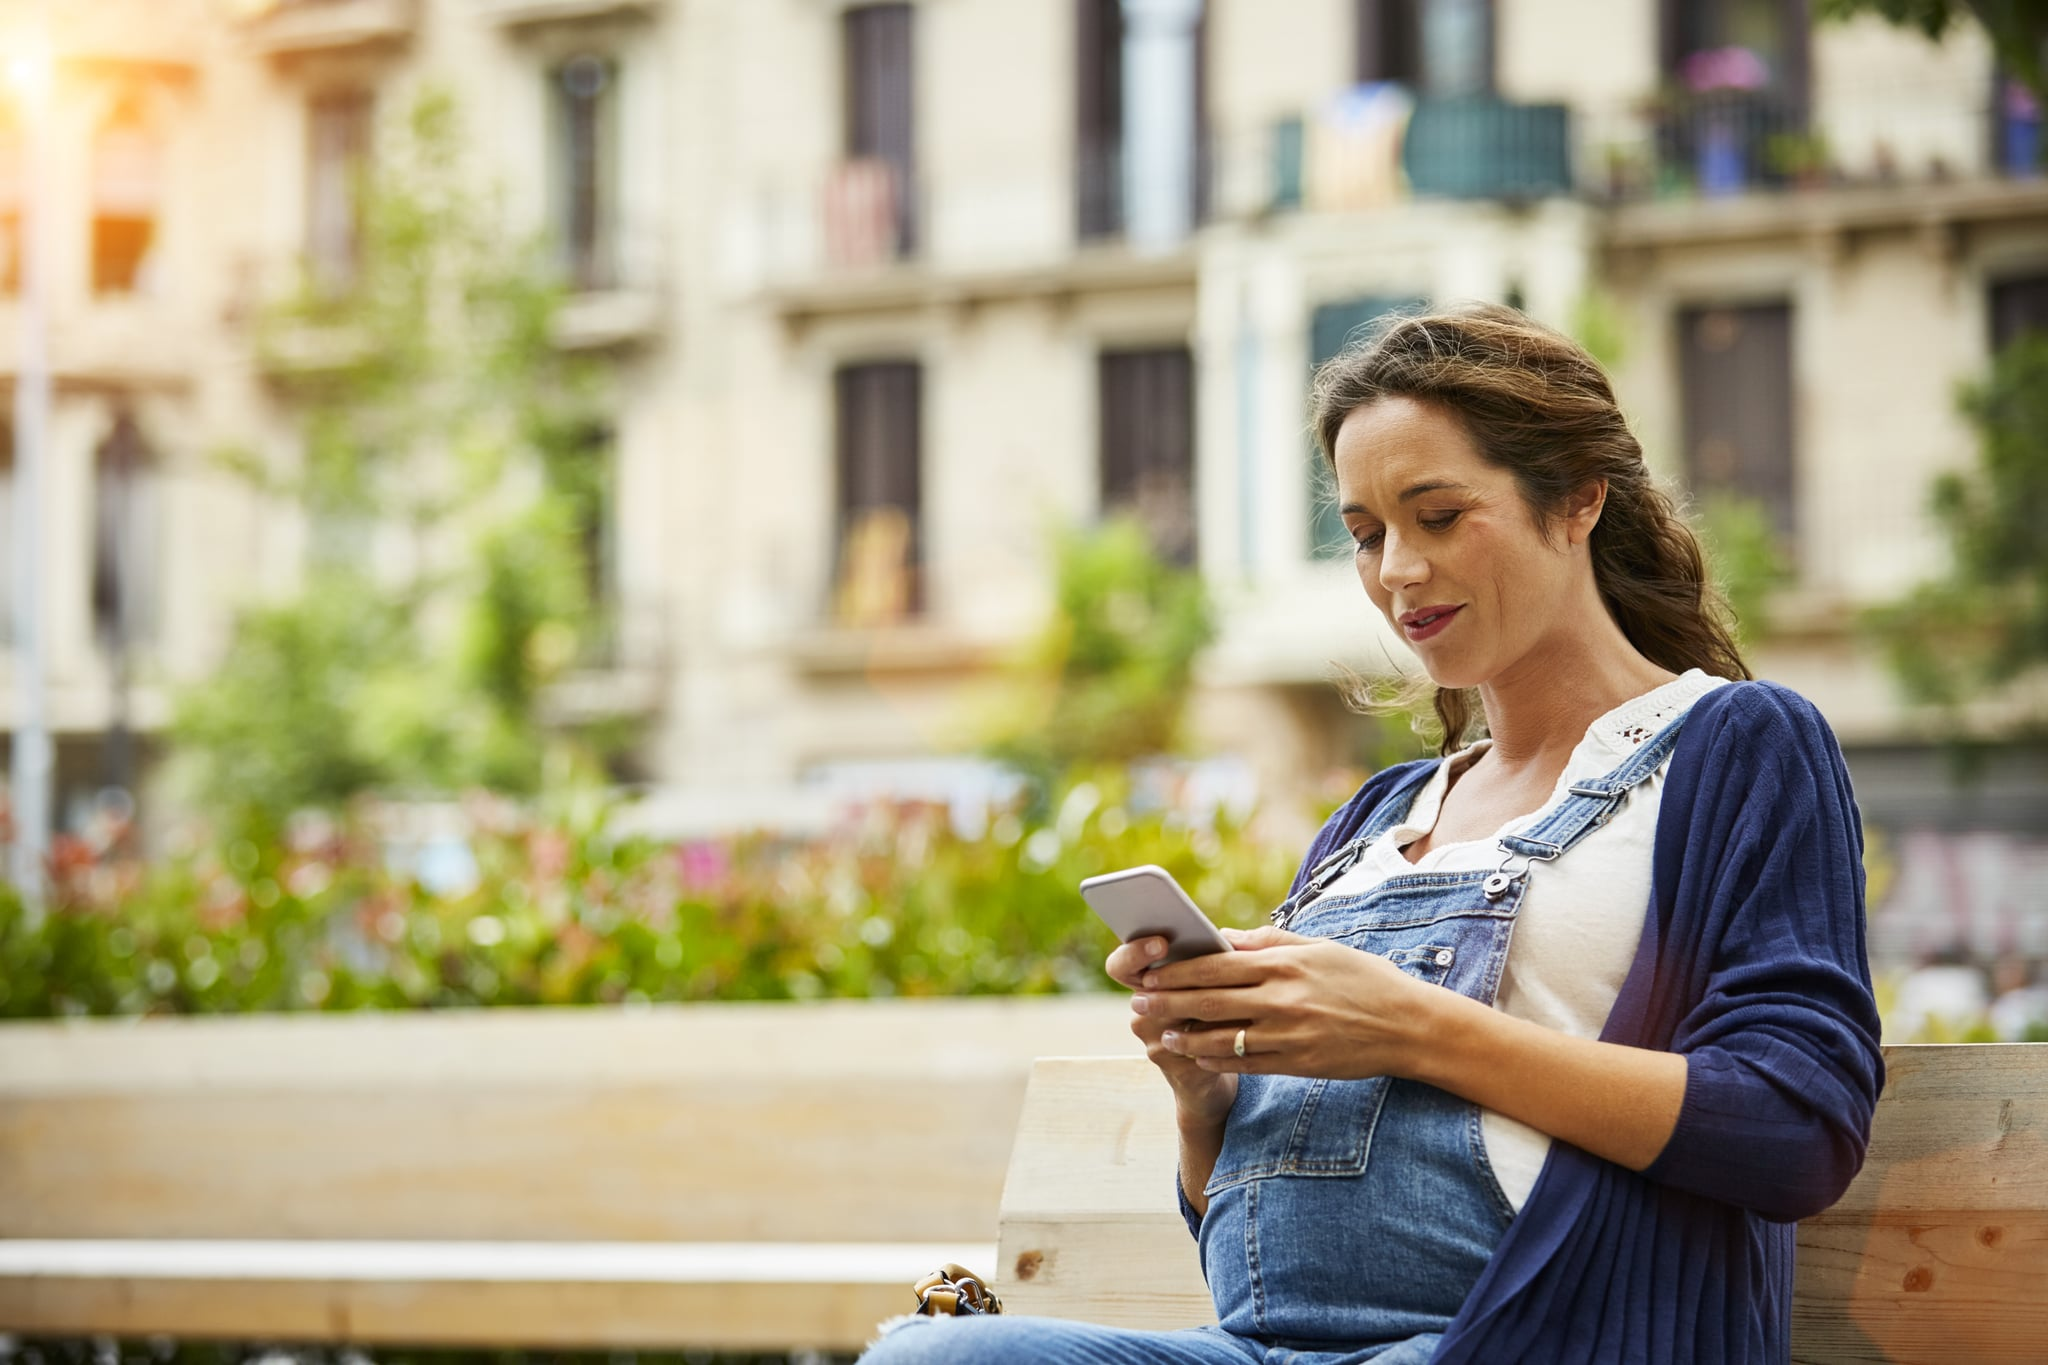 Pregnant woman text messaging while sitting on bench